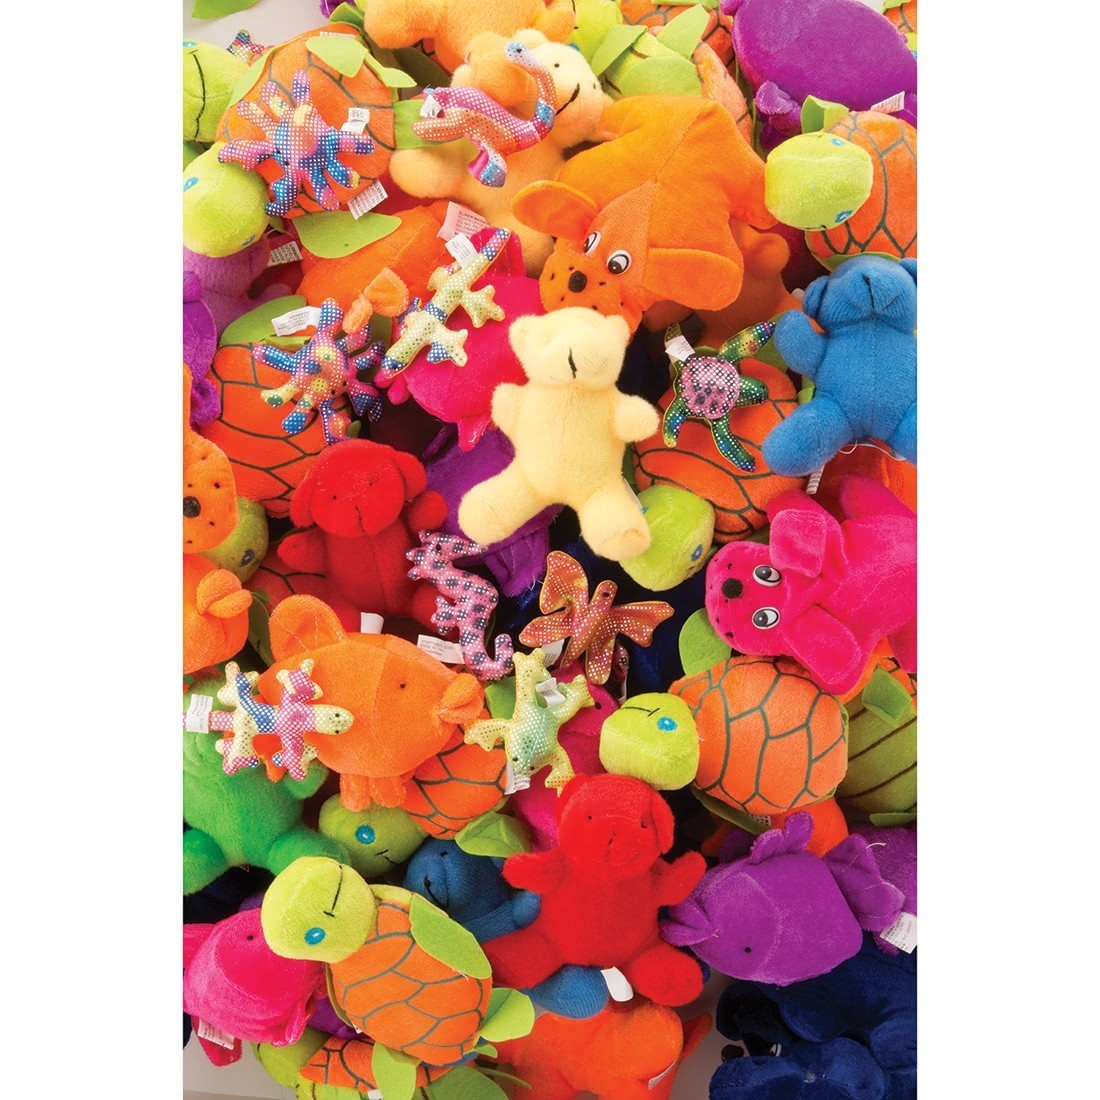 Stuffed Toy Treasure Chest Refill [image]